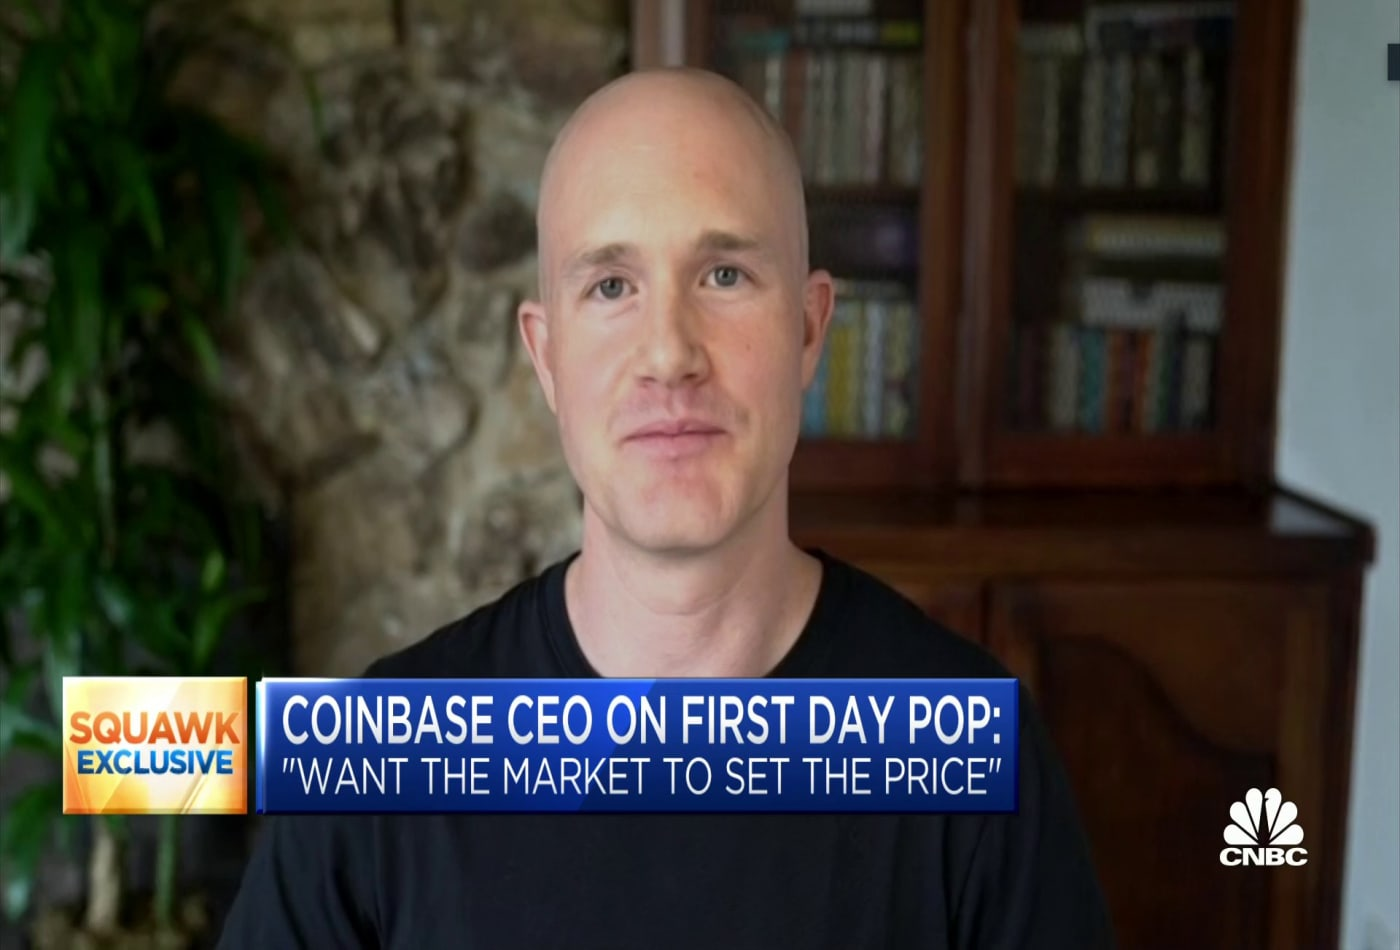 Coinbase CEO on the choice to go public through a direct listing